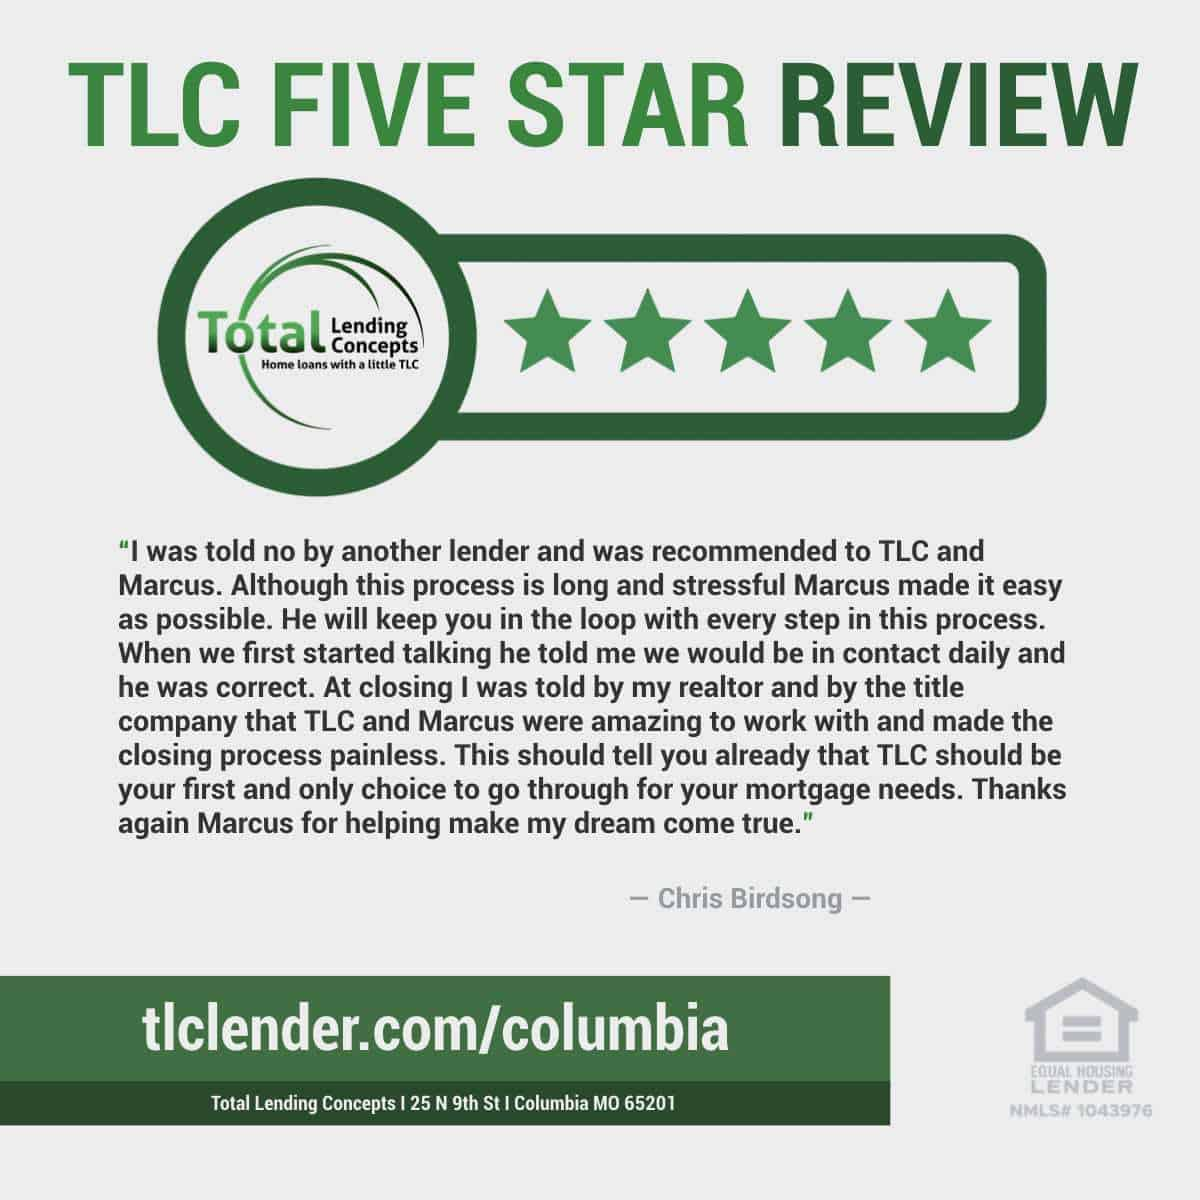 Total Lending Concepts Five Star Review Chris Birdsong in Columbia Missouri for Marcus Home Loan